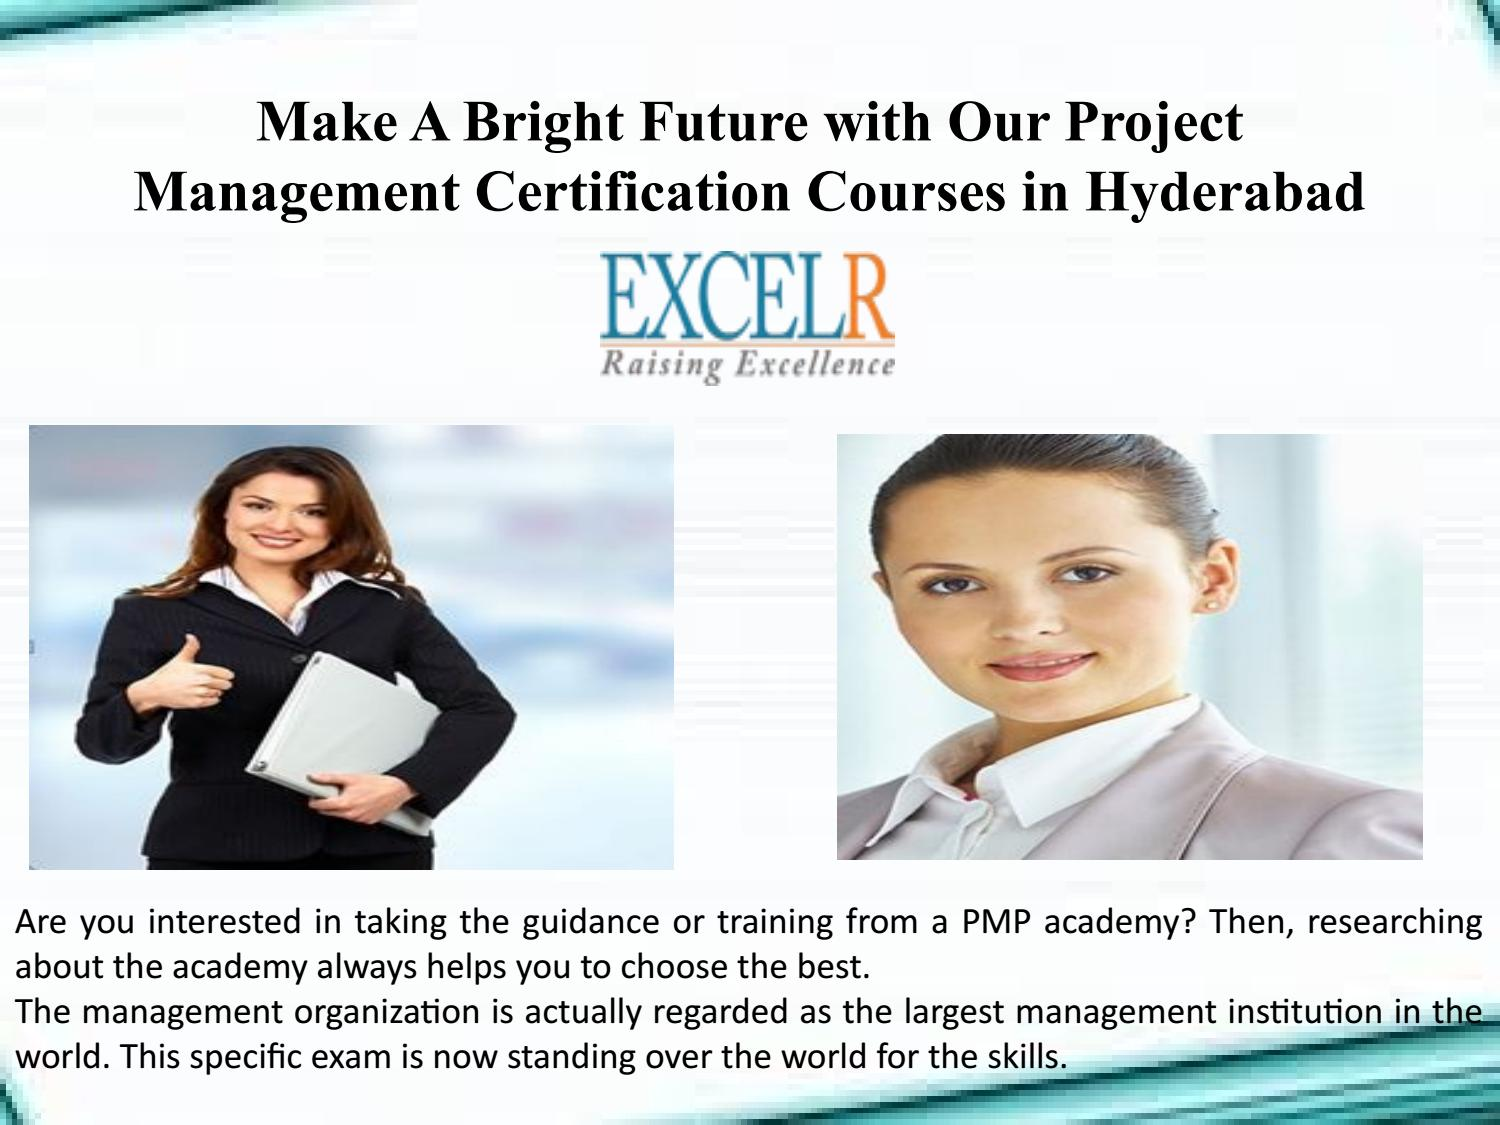 Make A Bright Future With Our Project Management Certification